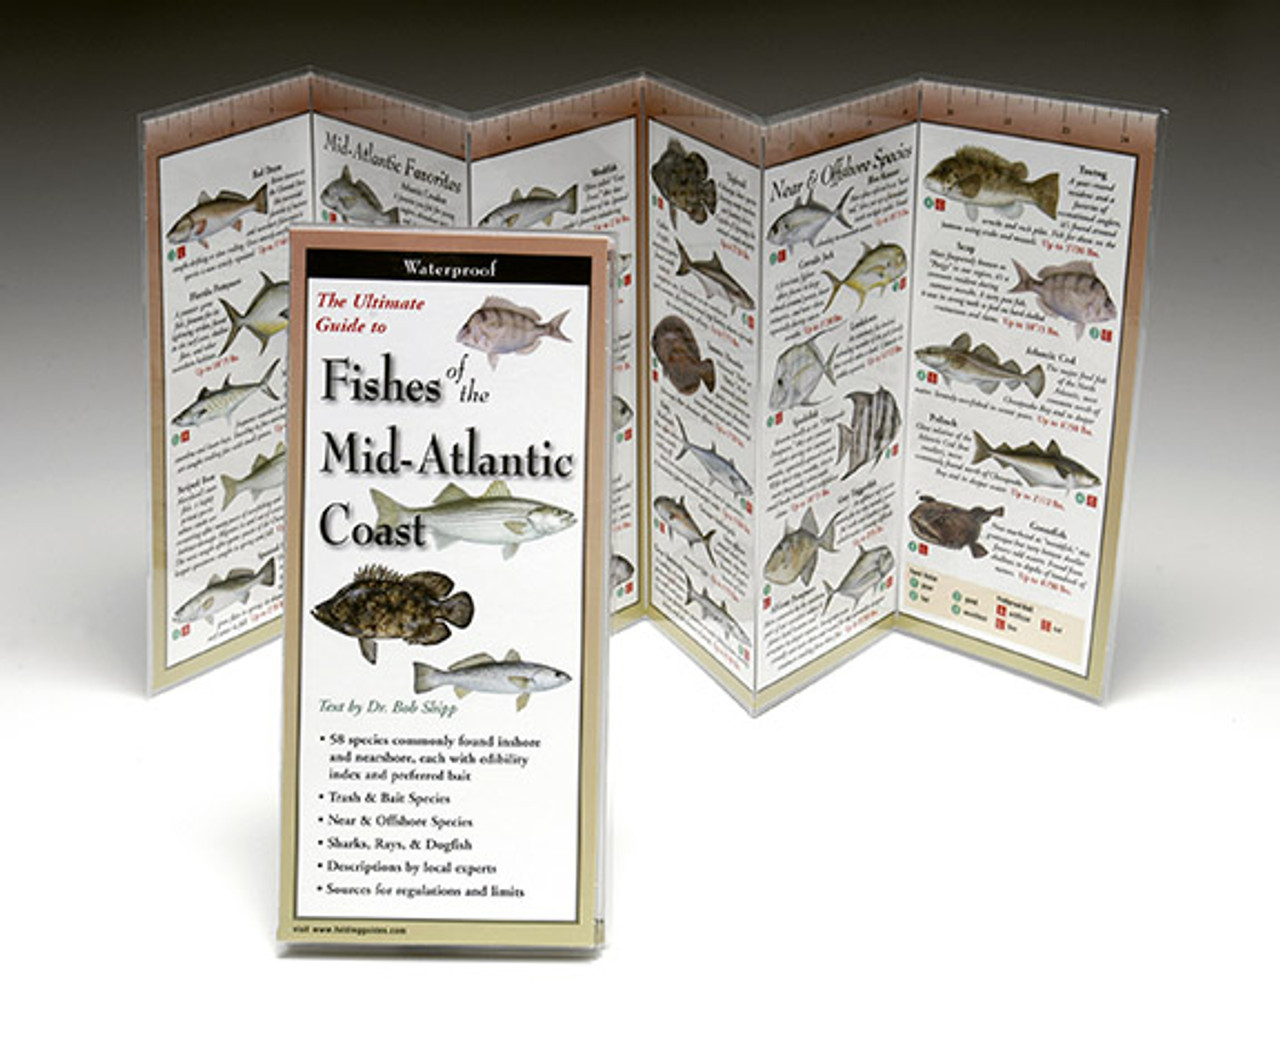 Fishes of the Mid-Atlantic Coast